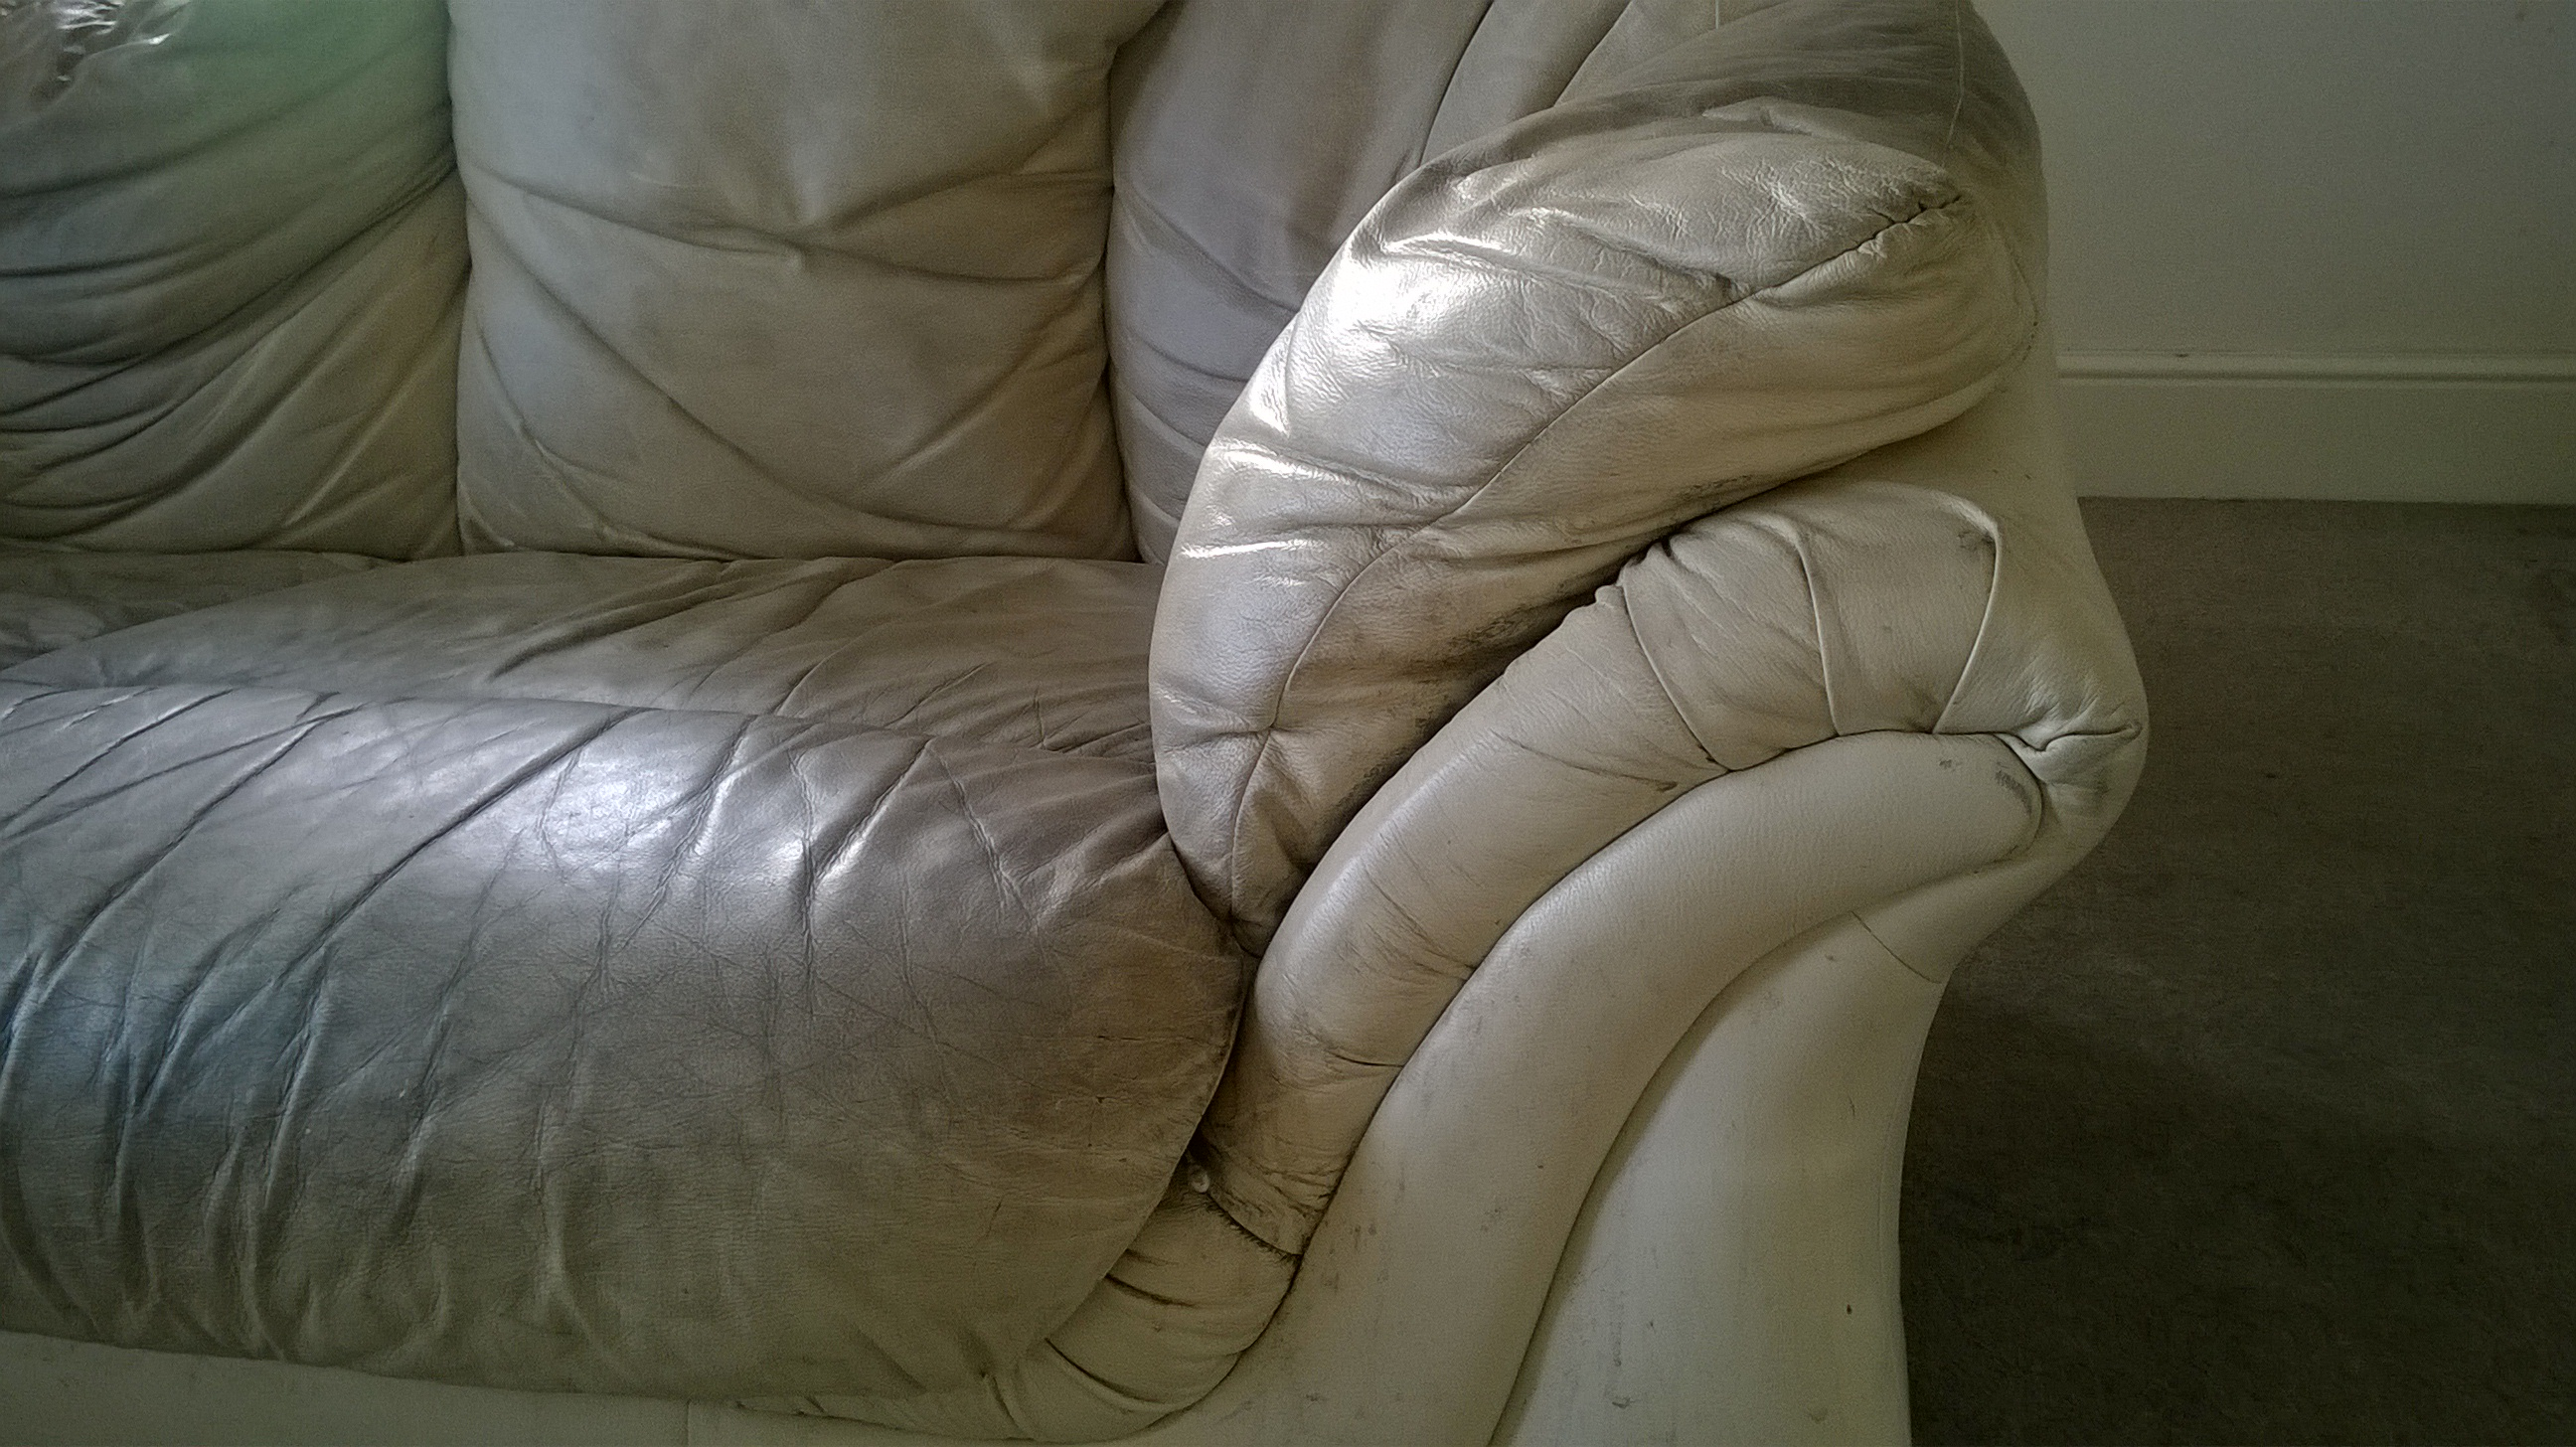 leather sofa patch kit picture on renovating 2 leather sofas with